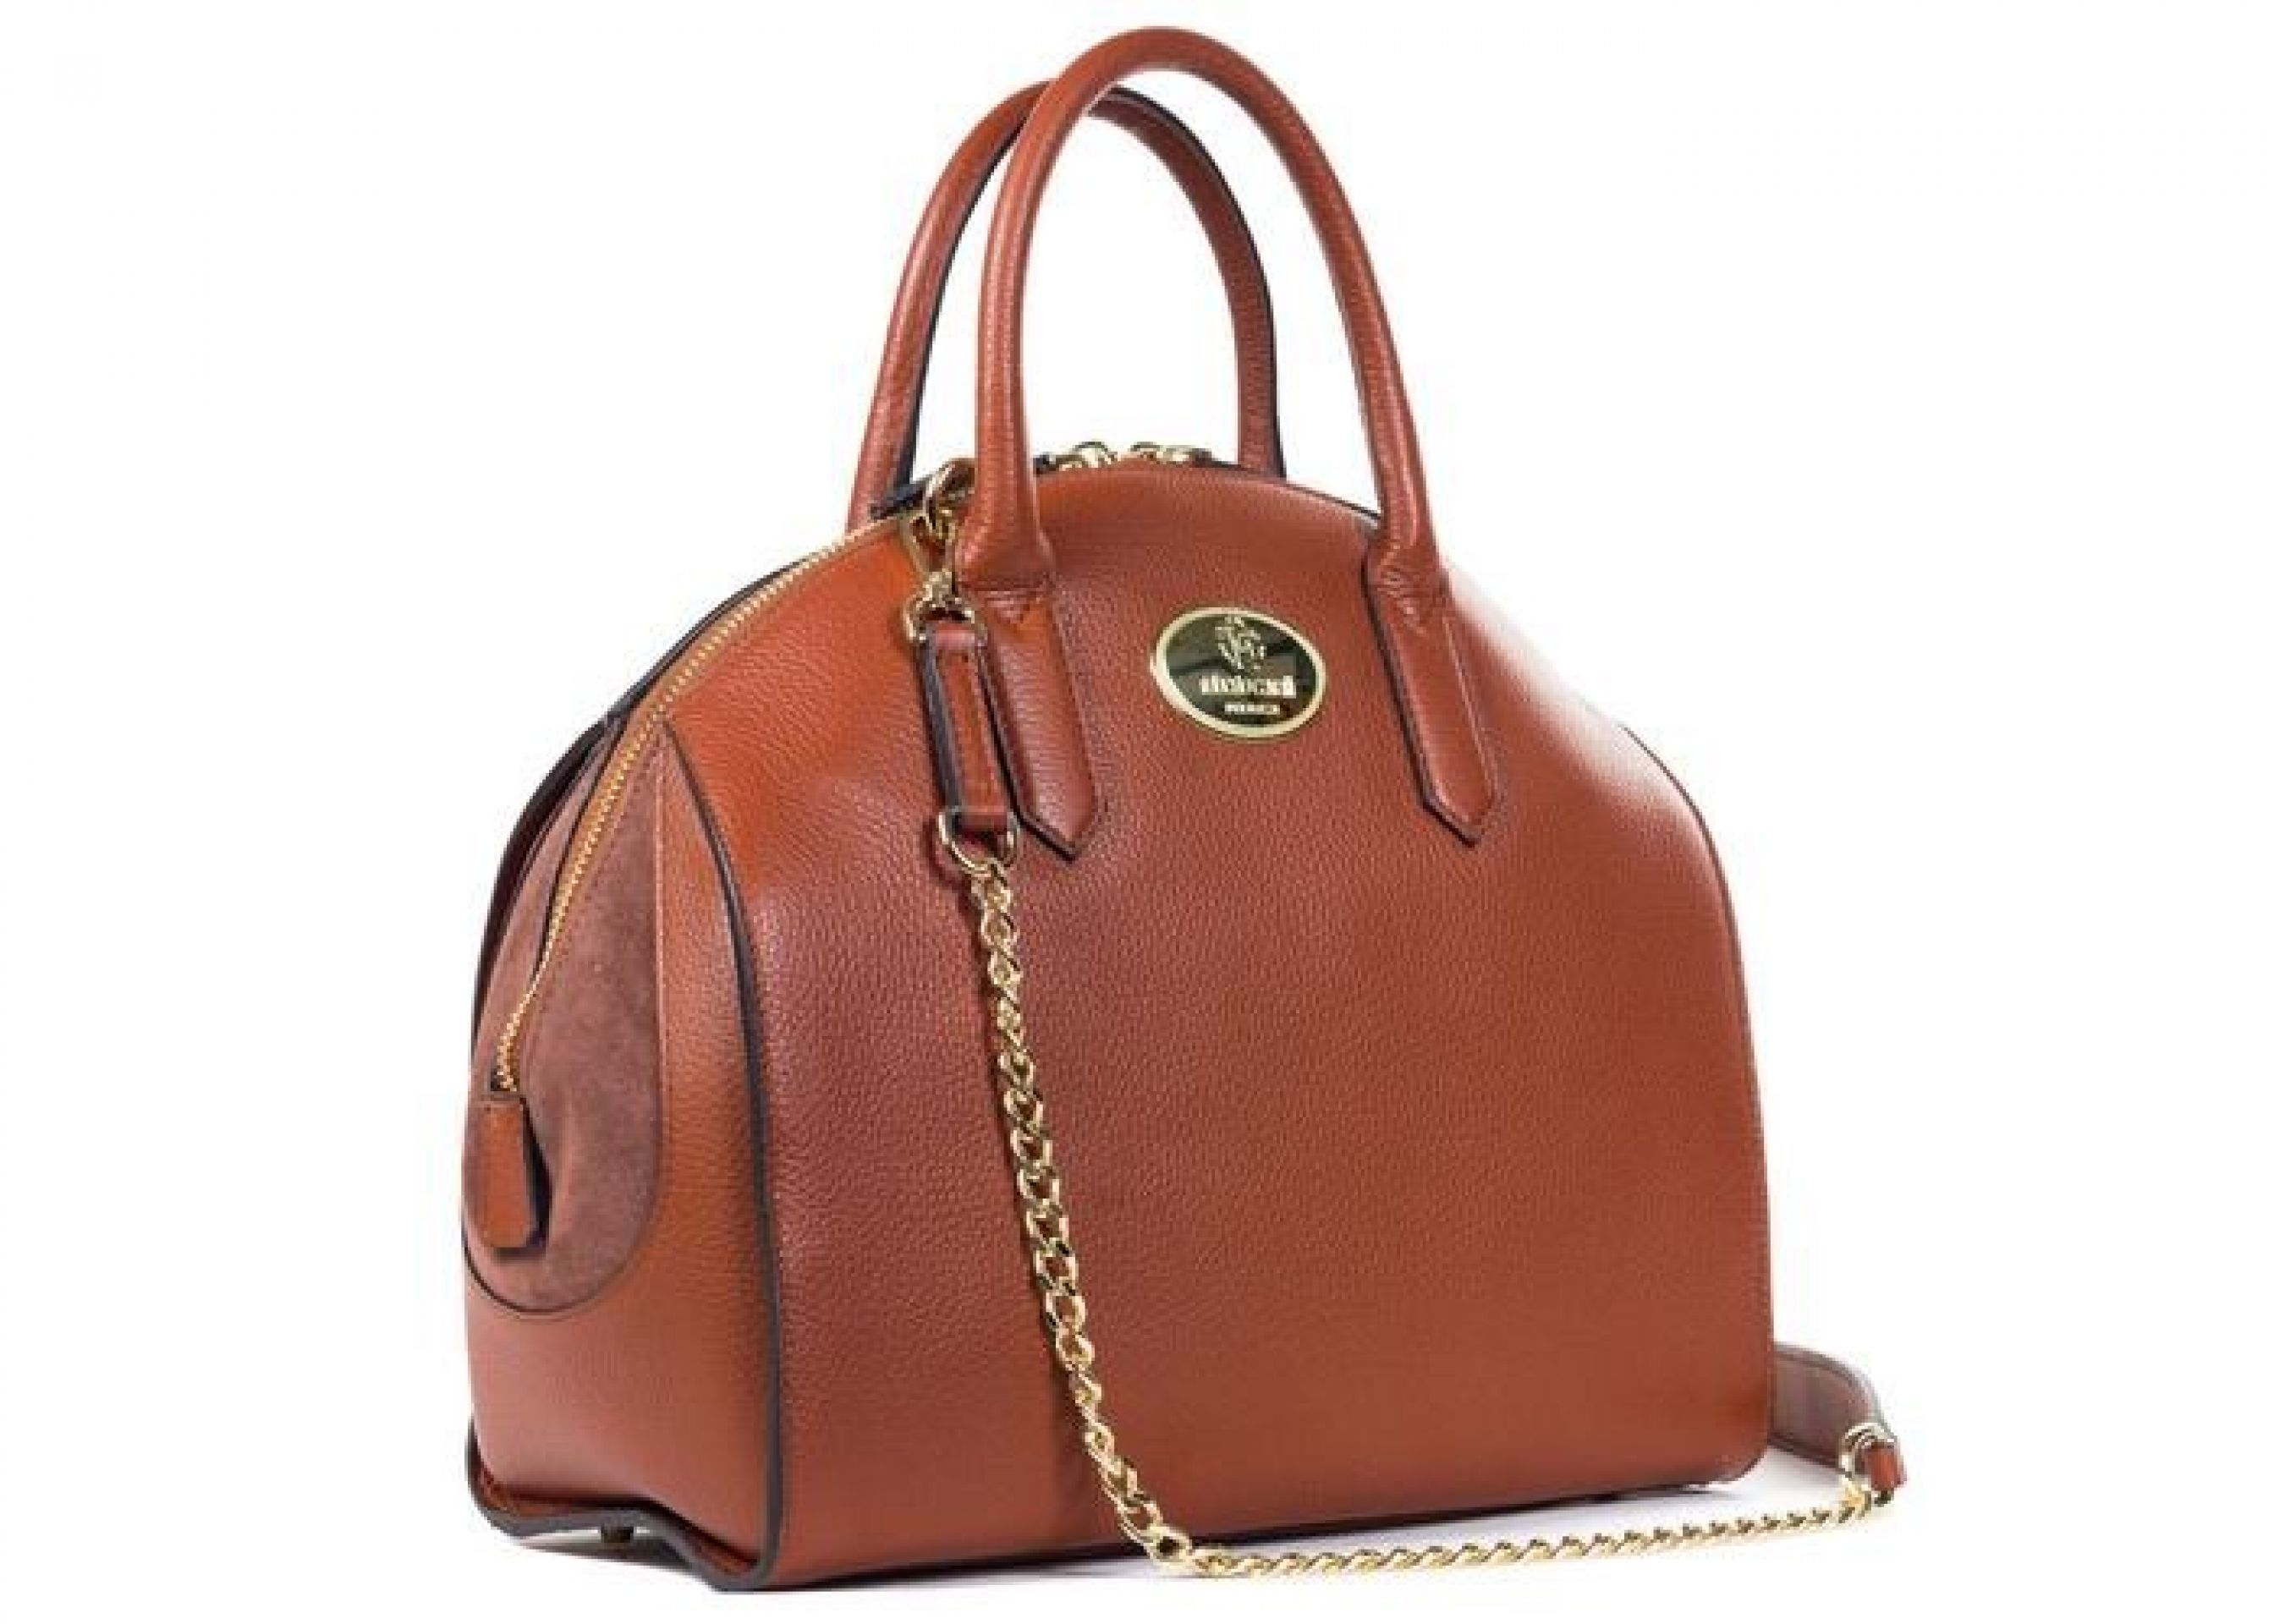 ROBERTO CAVALLI WOMENS TAN GRAINED LEATHER BOWLER HANDBAG